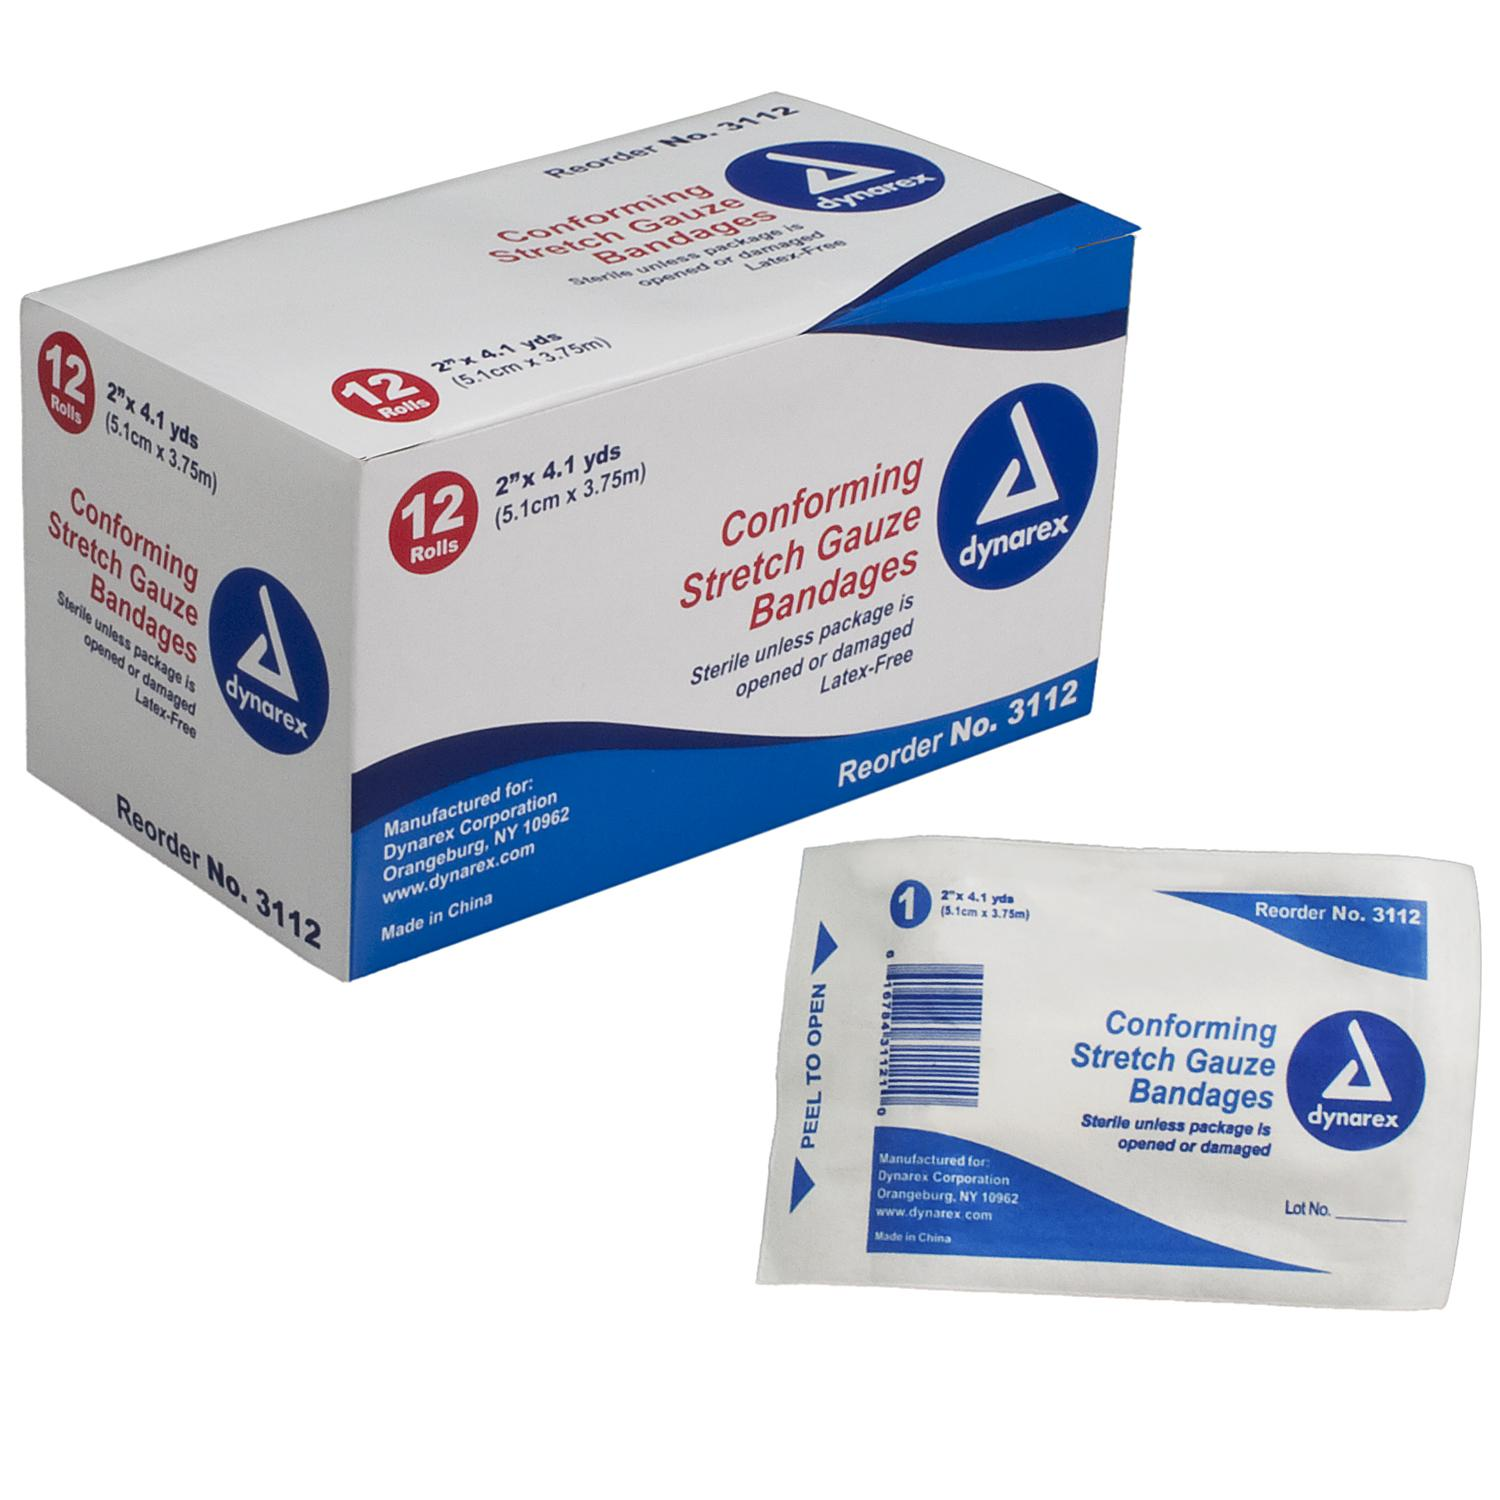 Stretch Gauze Bandage Roll Sterile 2